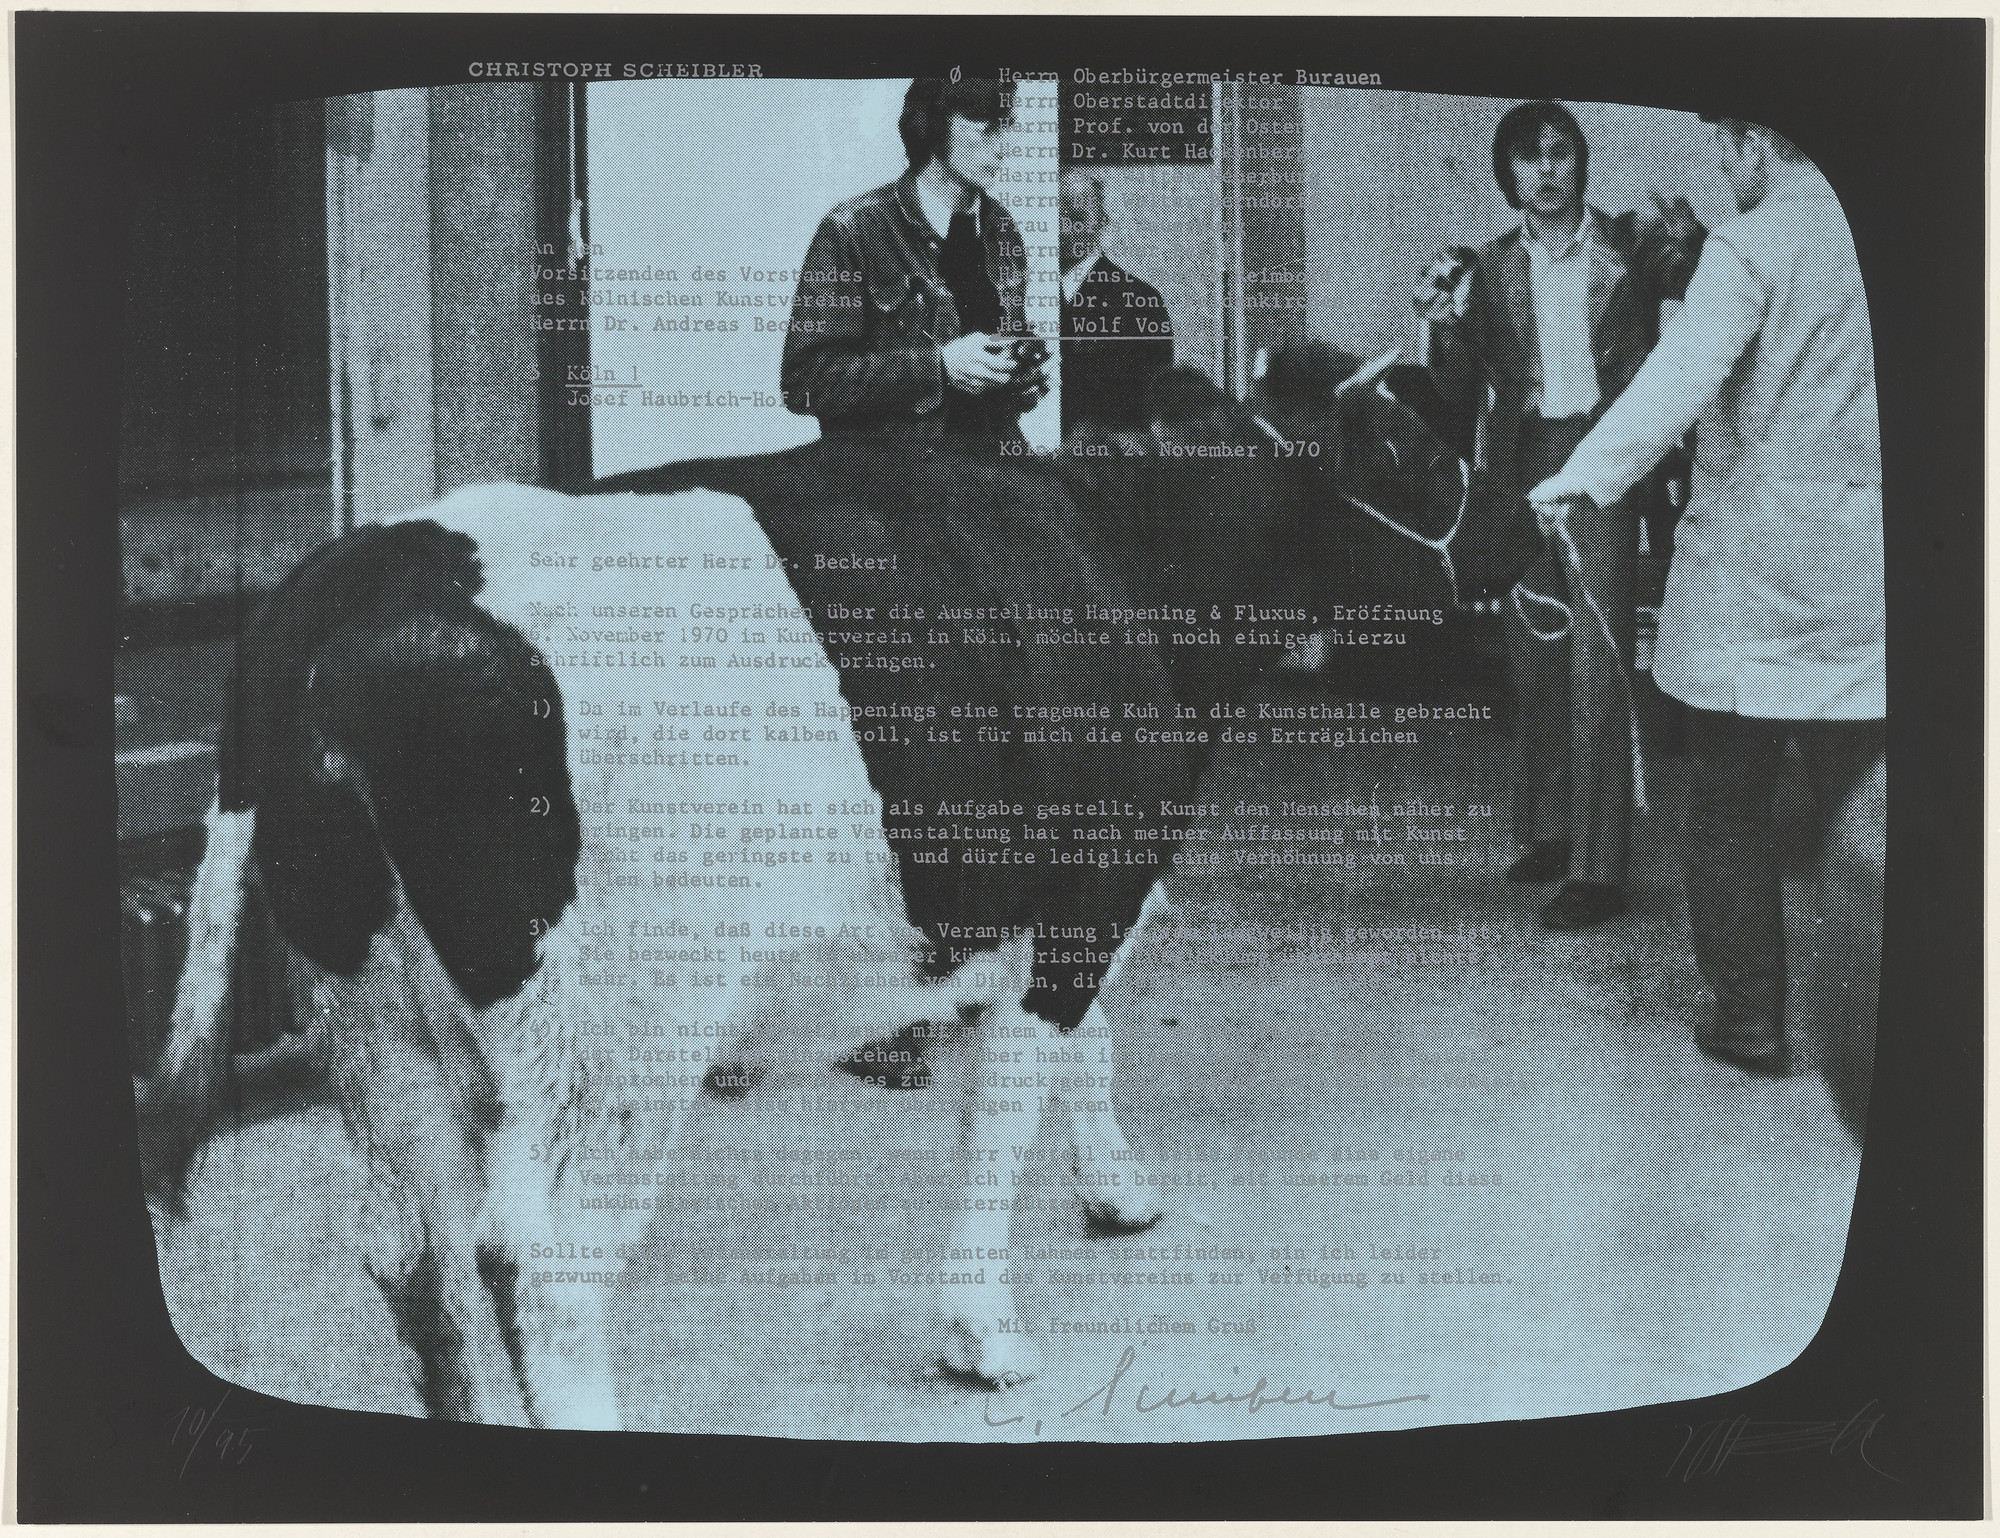 Wolf Vostell. TV-Oxen II (TV-Ochsen II) from Weekend. 1971, published 1972